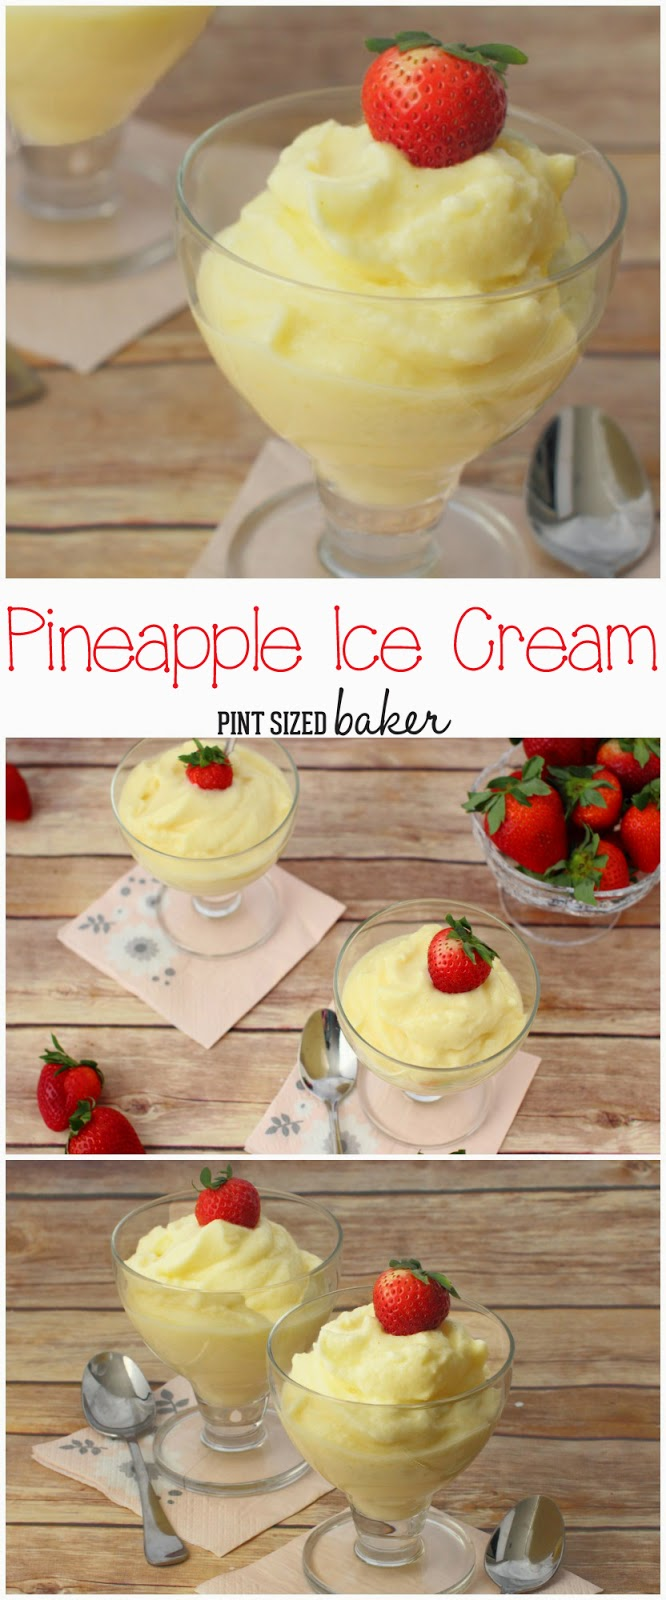 Pineapple Sherbet is smooth and creamy and comes together with two ingredients and five minutes. It's the perfect summer snack!